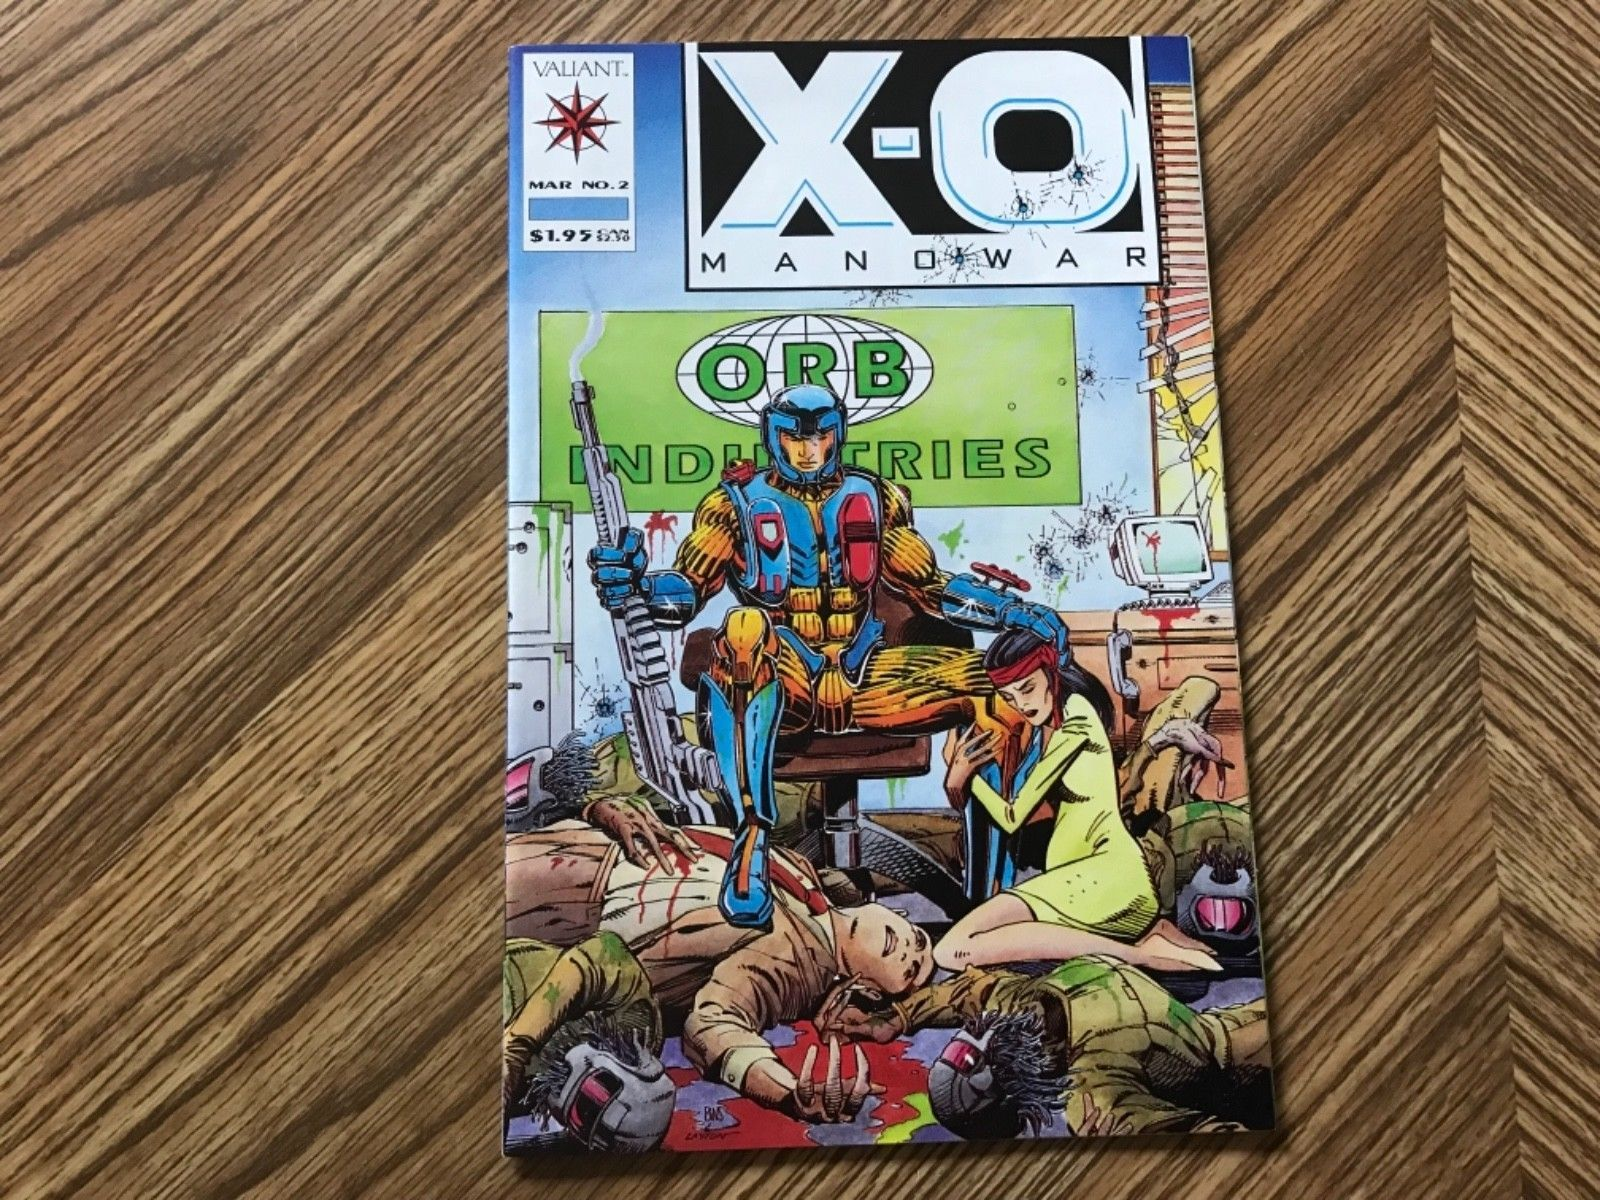 X O Manowar #2 (Mar1992) Valiant Comics Looks To Be In